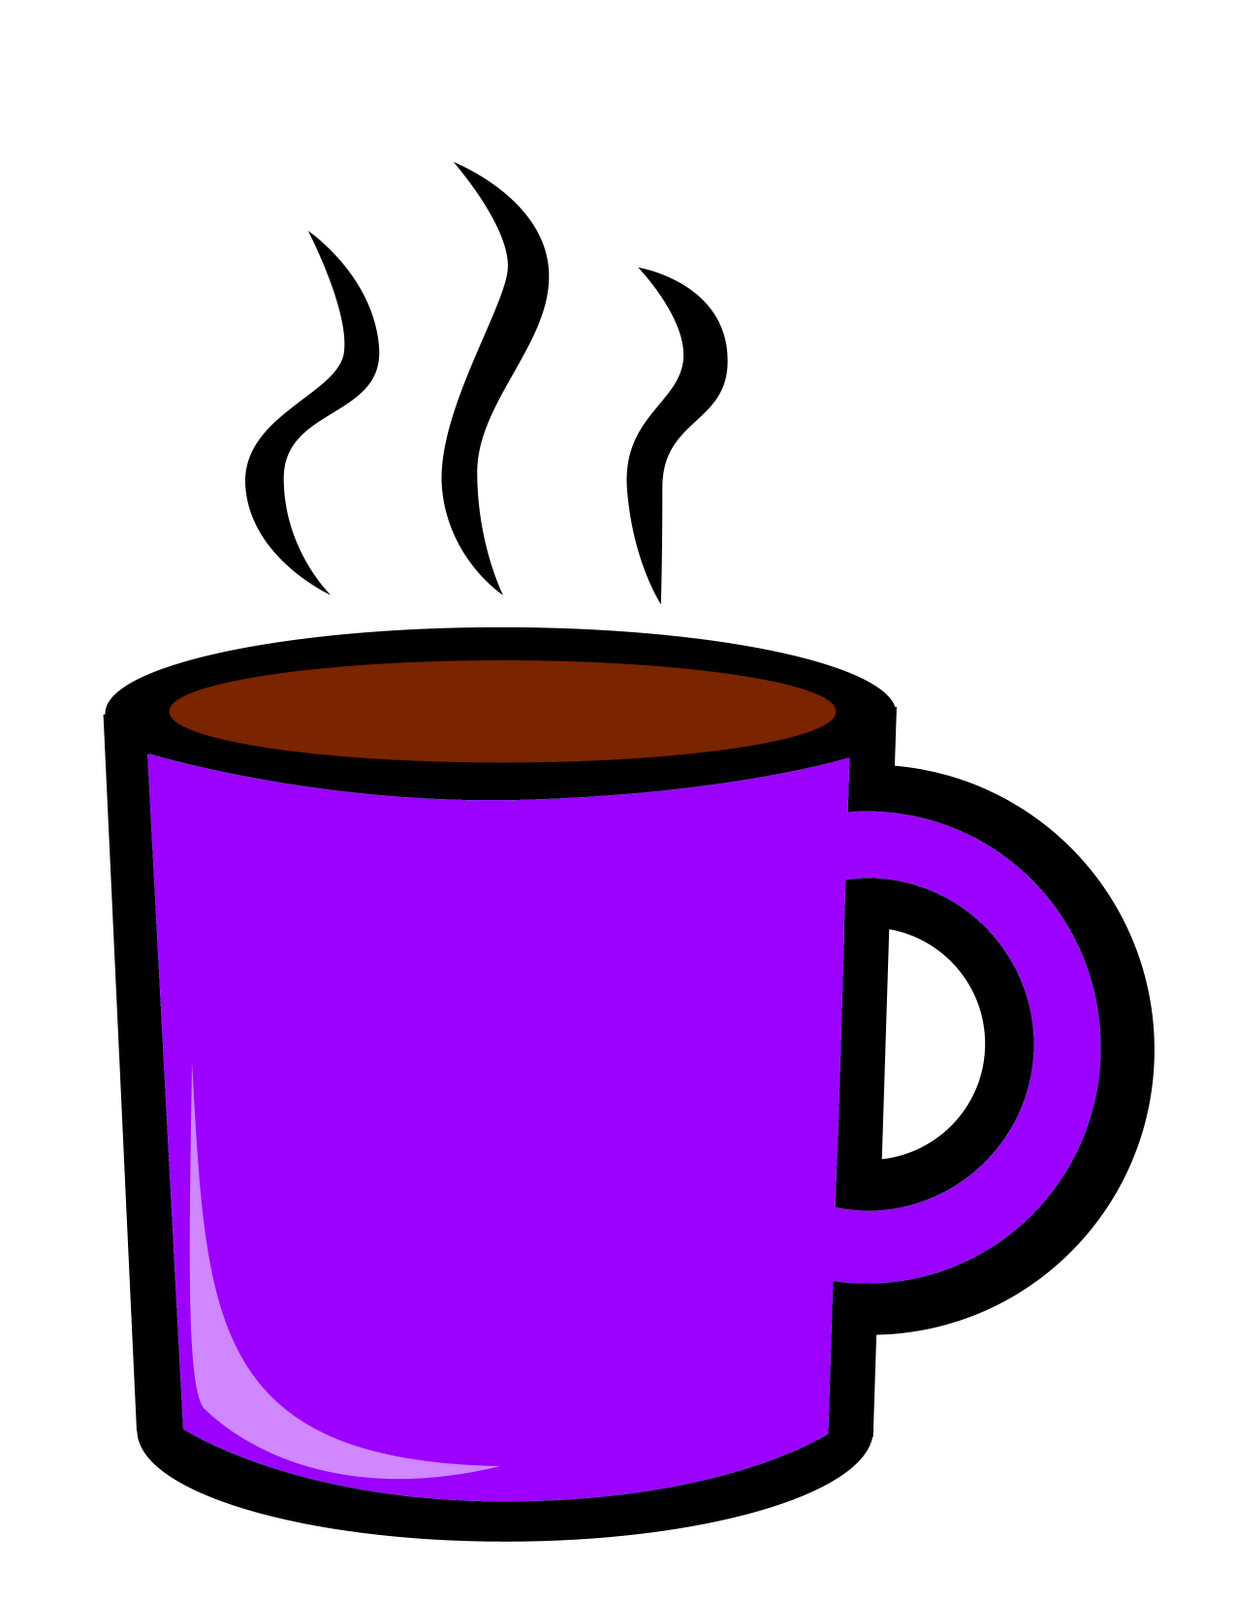 Cup Of Hot Cocoa Clipart.